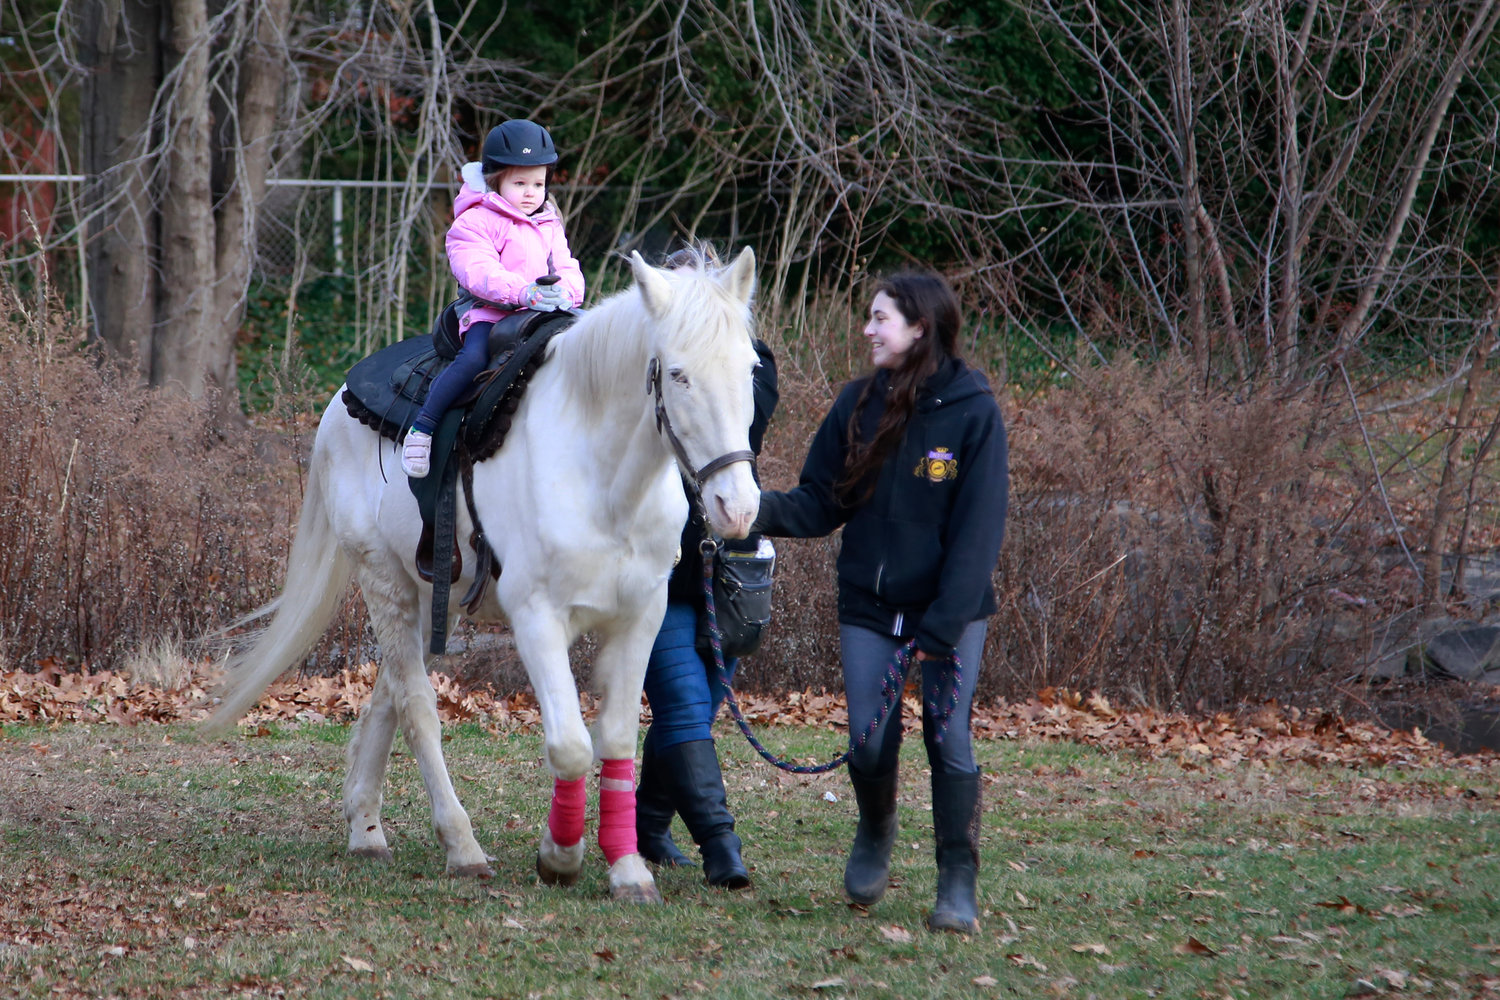 Three-year-old Evie Harlacher rode a horse from the New York Equestrian Center.